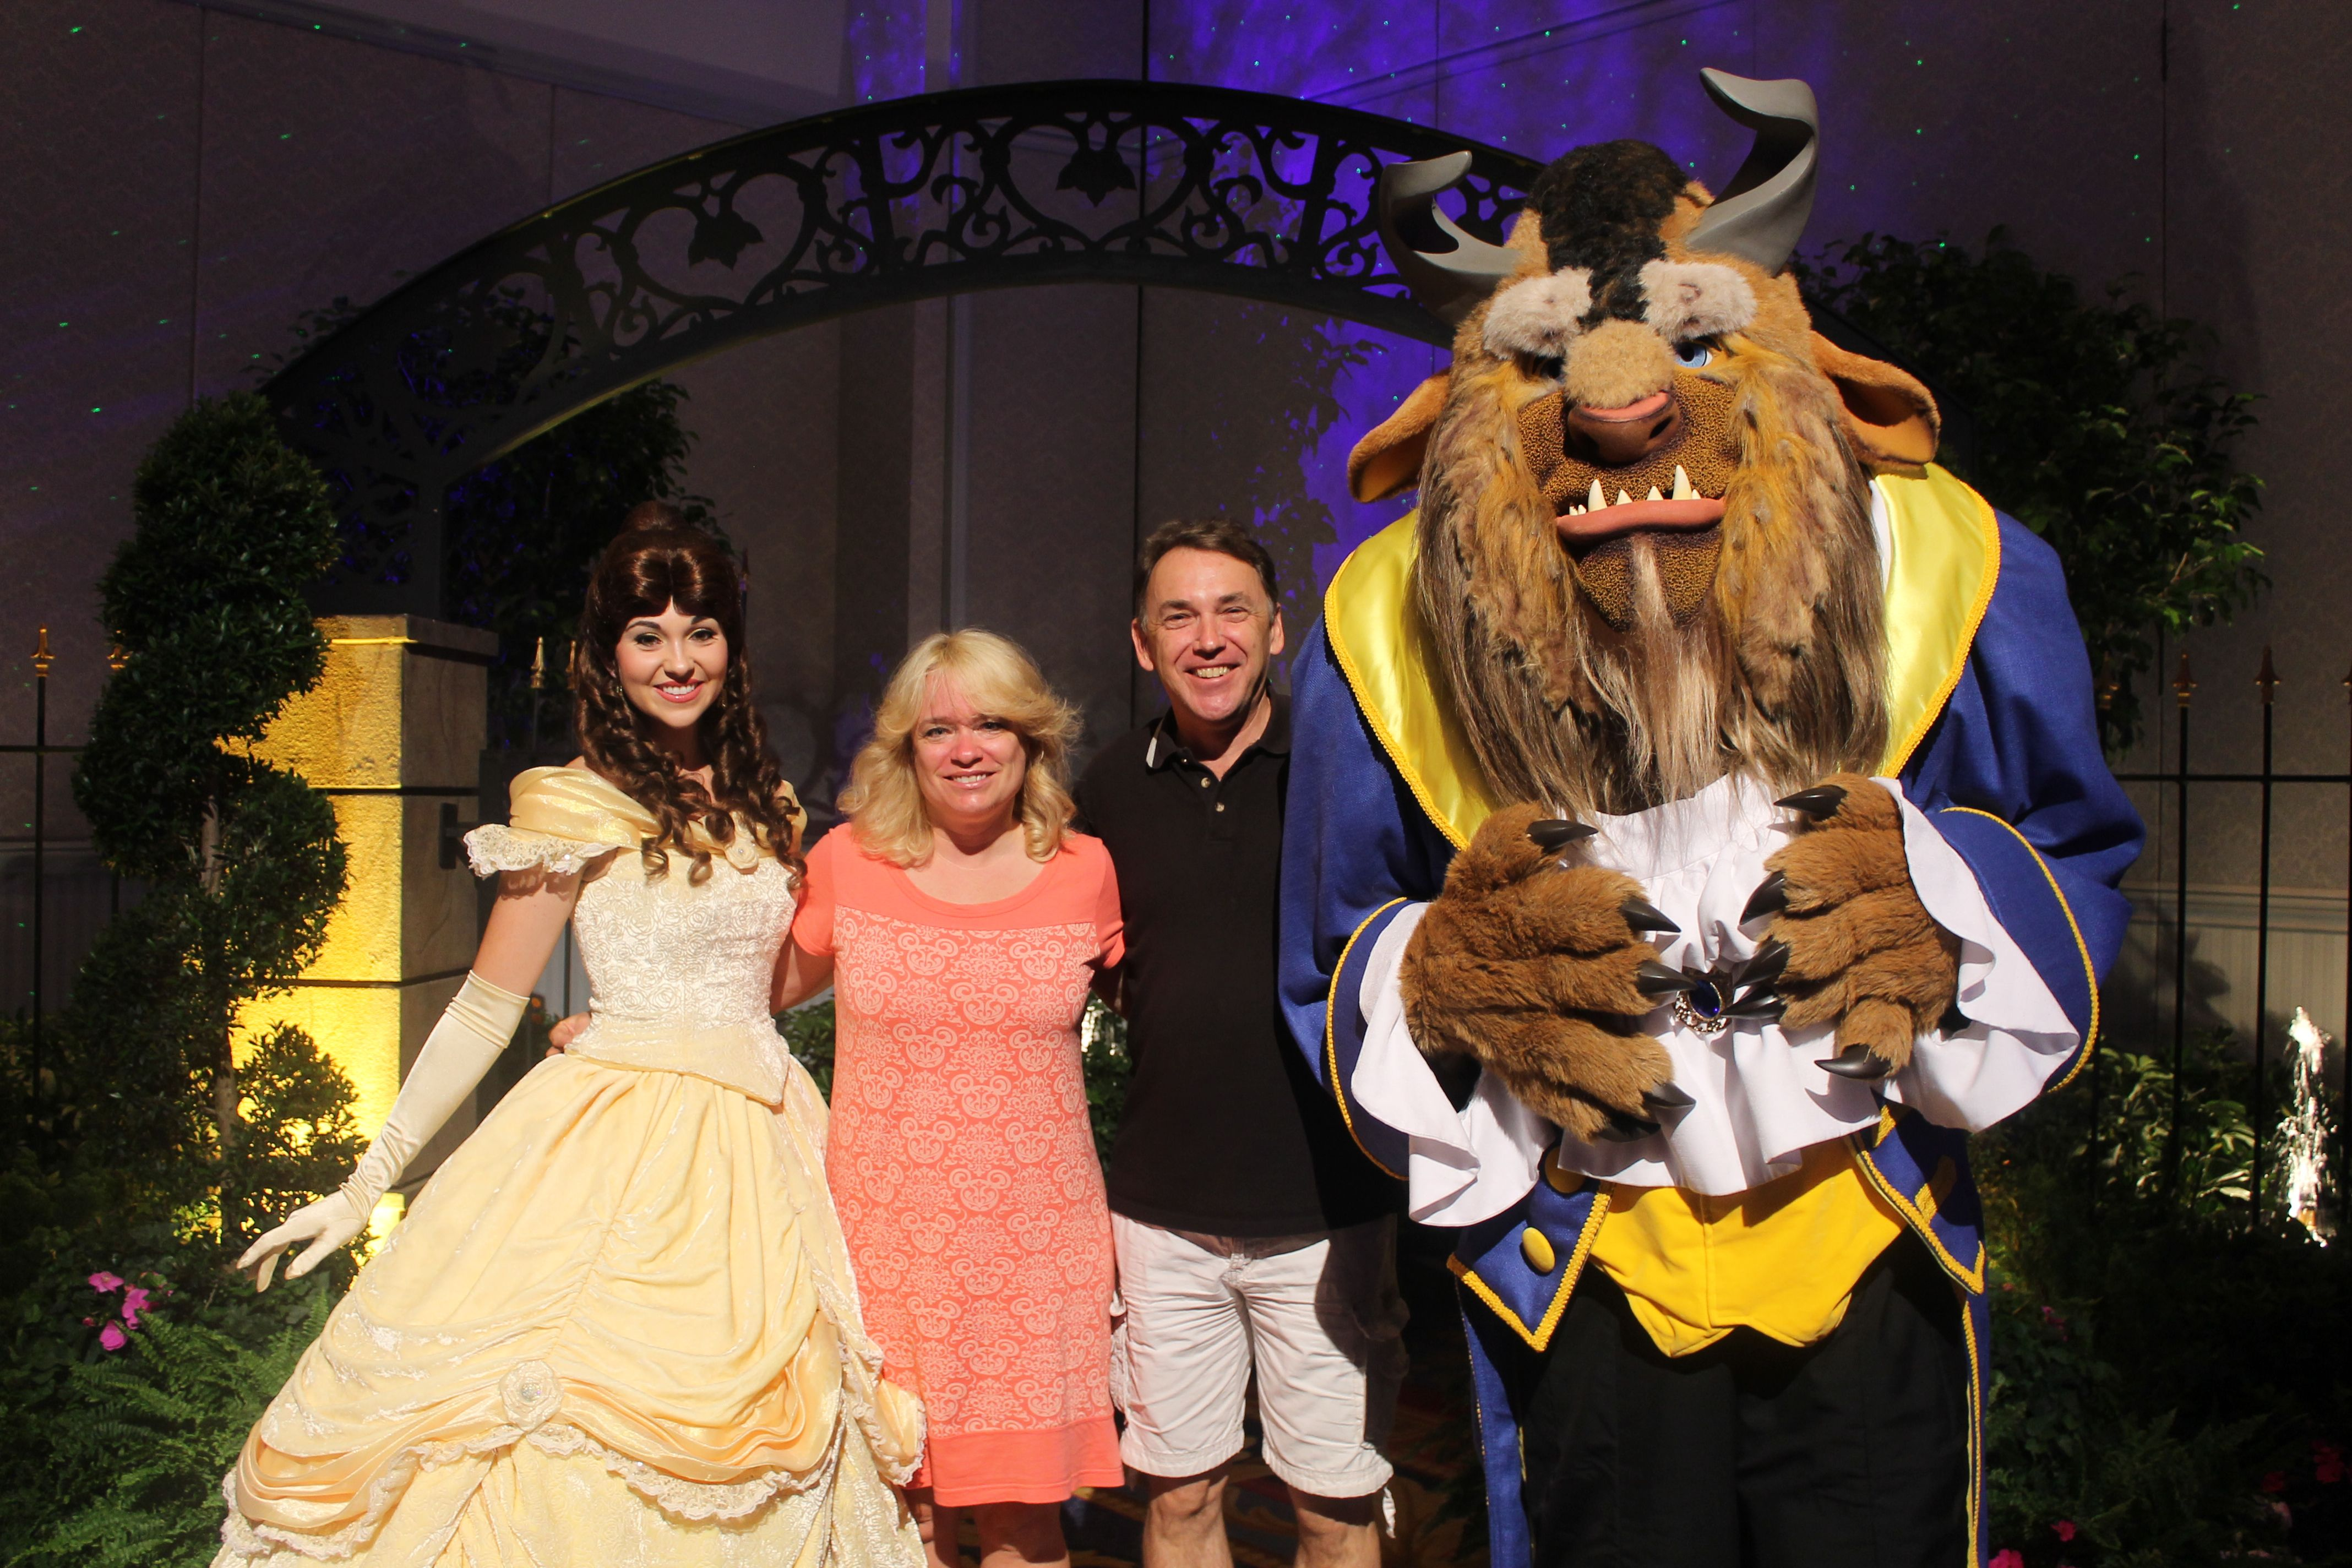 BEAUTY AND THE bEAST CHARACTER GREET